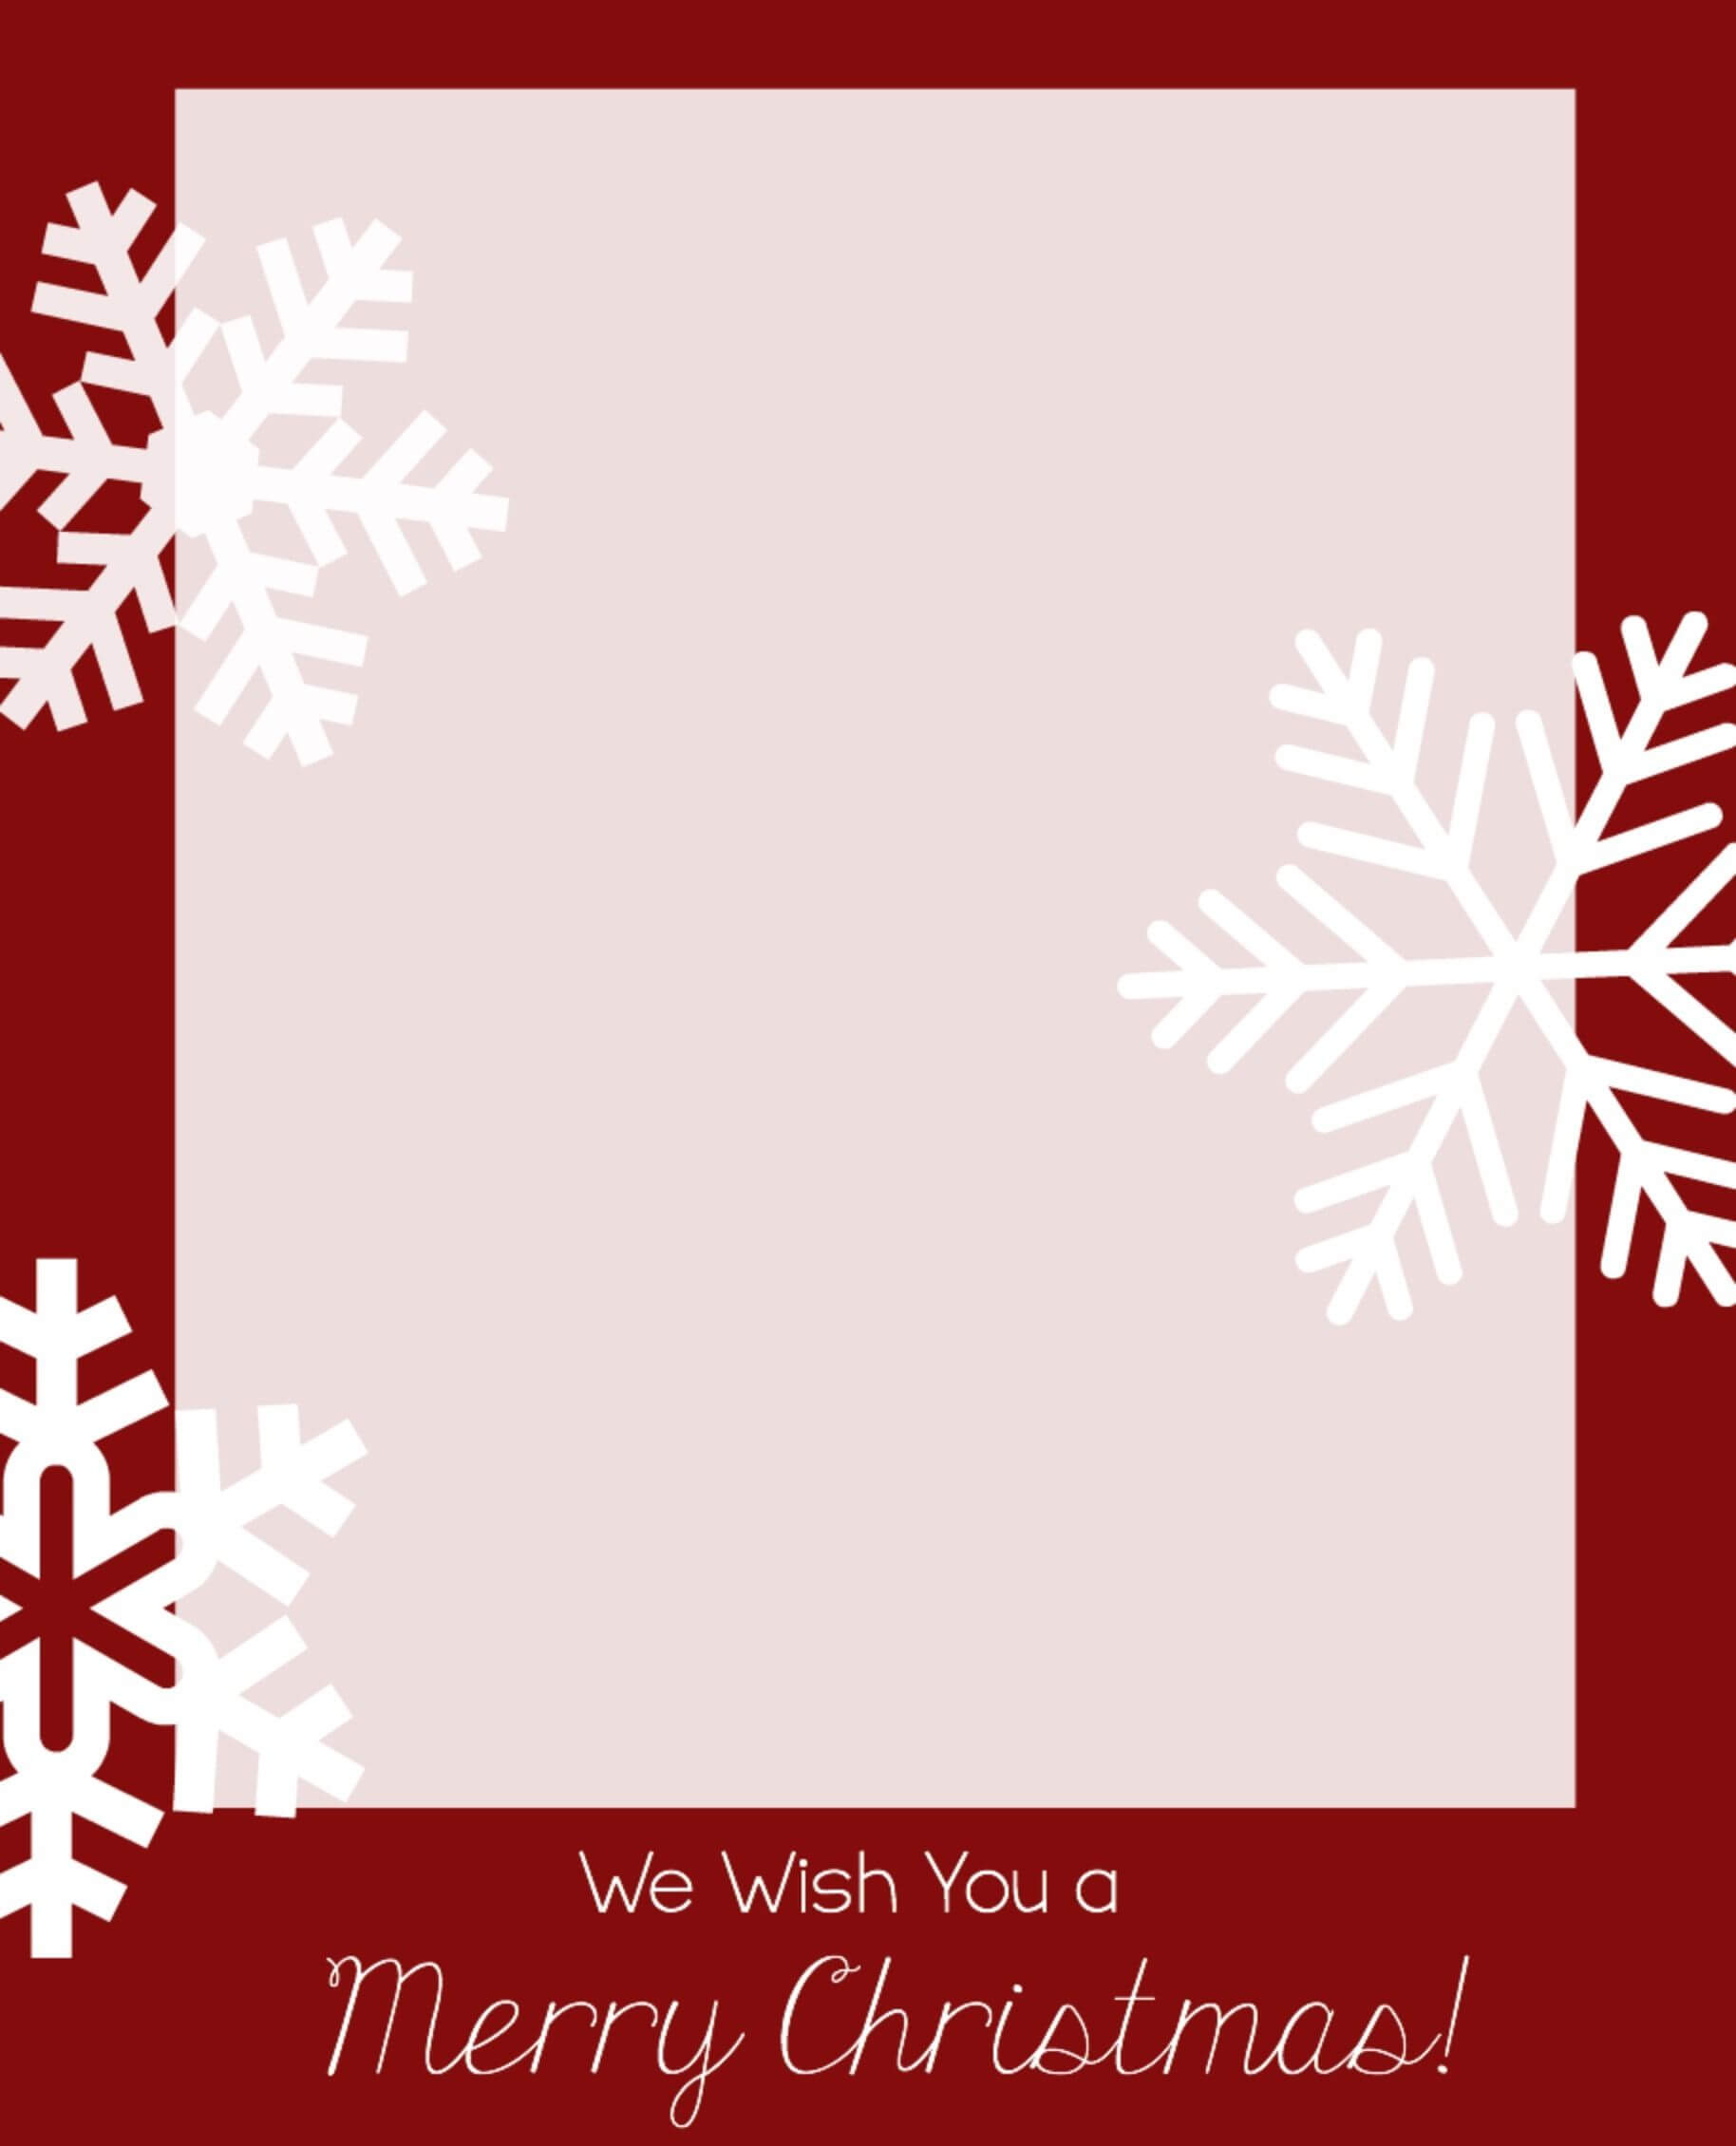 Free Christmas Card Templates | Christmas Photo Card Inside Happy Holidays Card Template